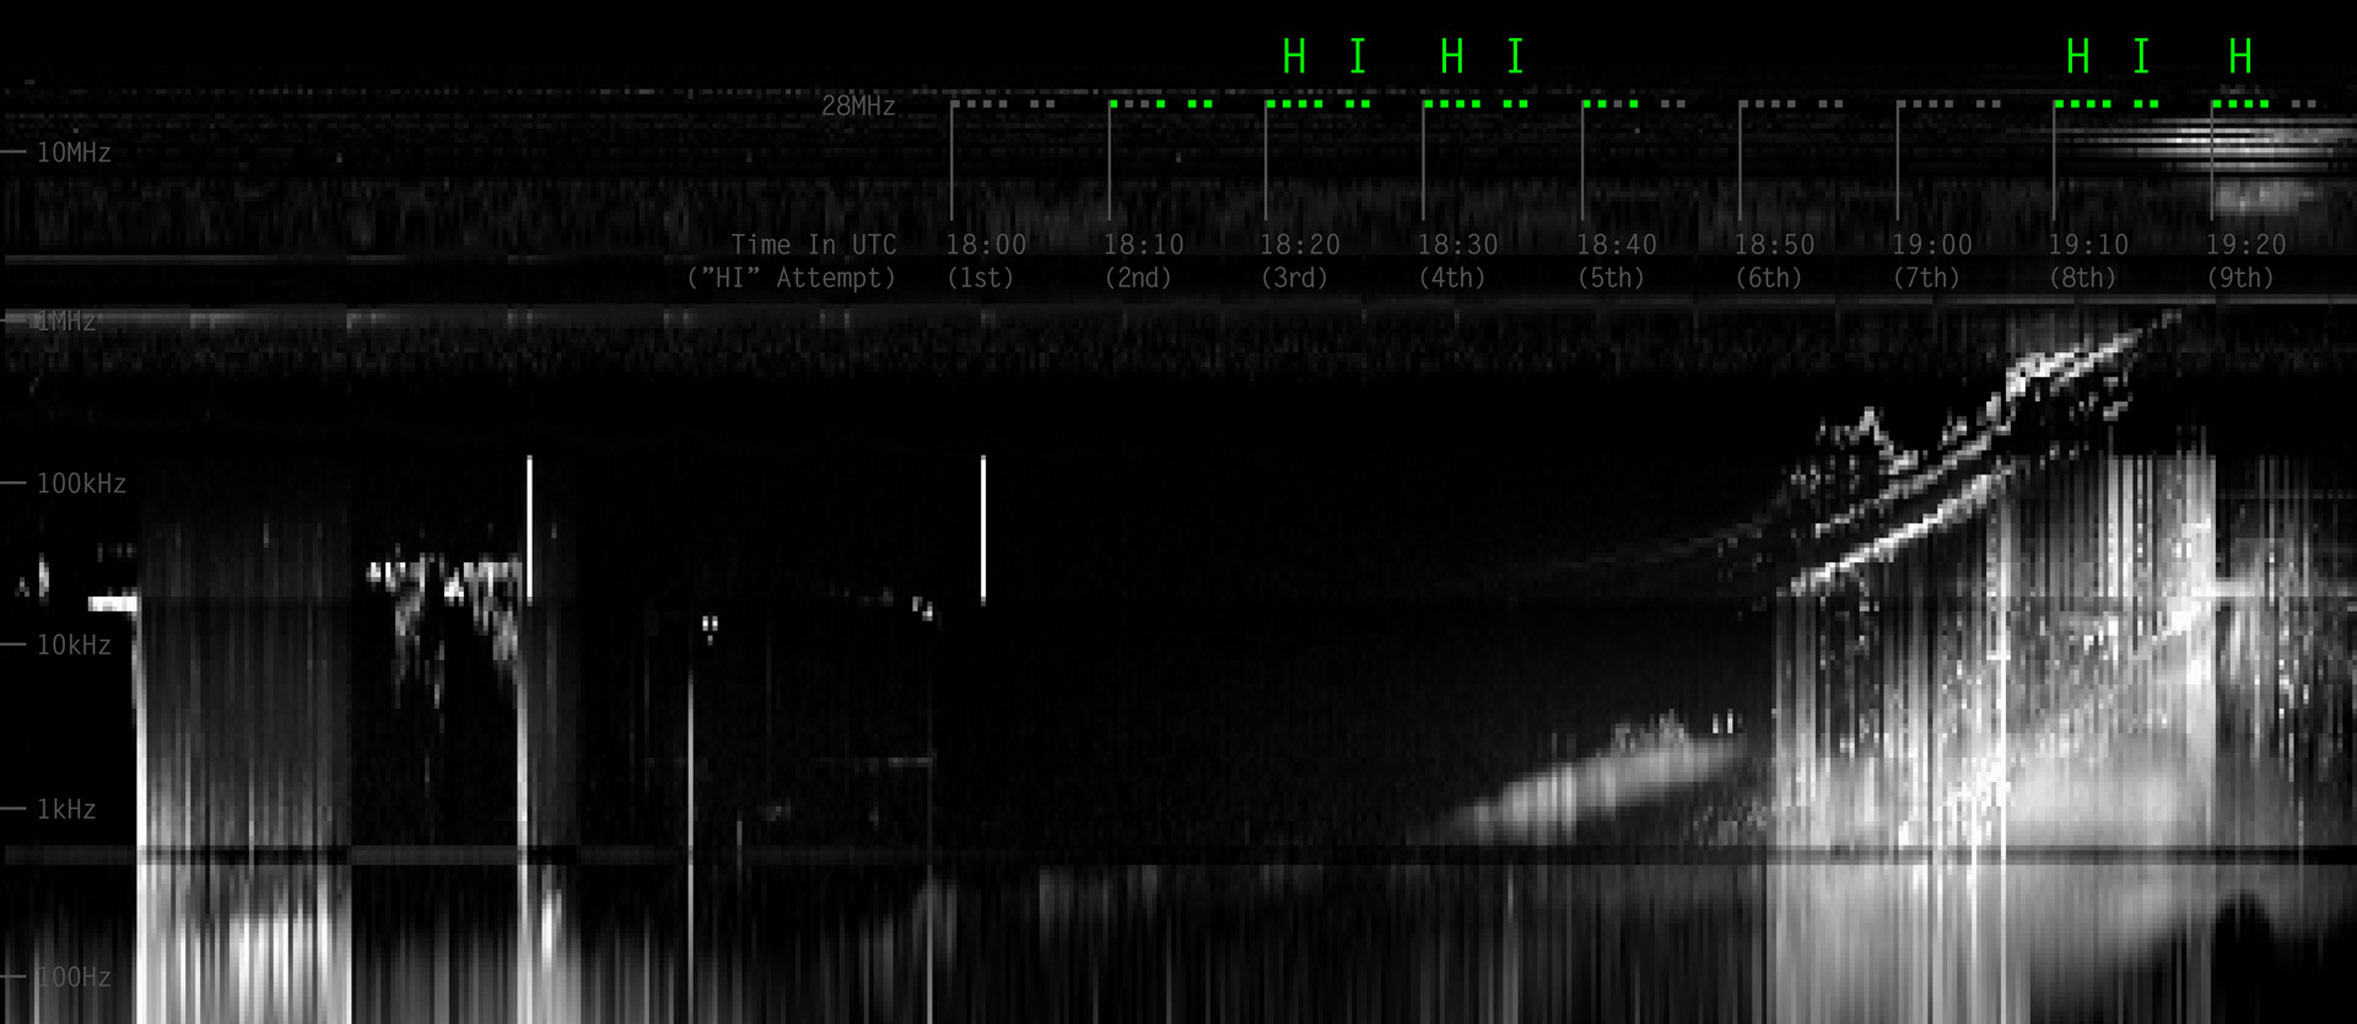 Hd Jupiter Wallpaper Space Images Juno Detects A Ham Radio Hi From Earth